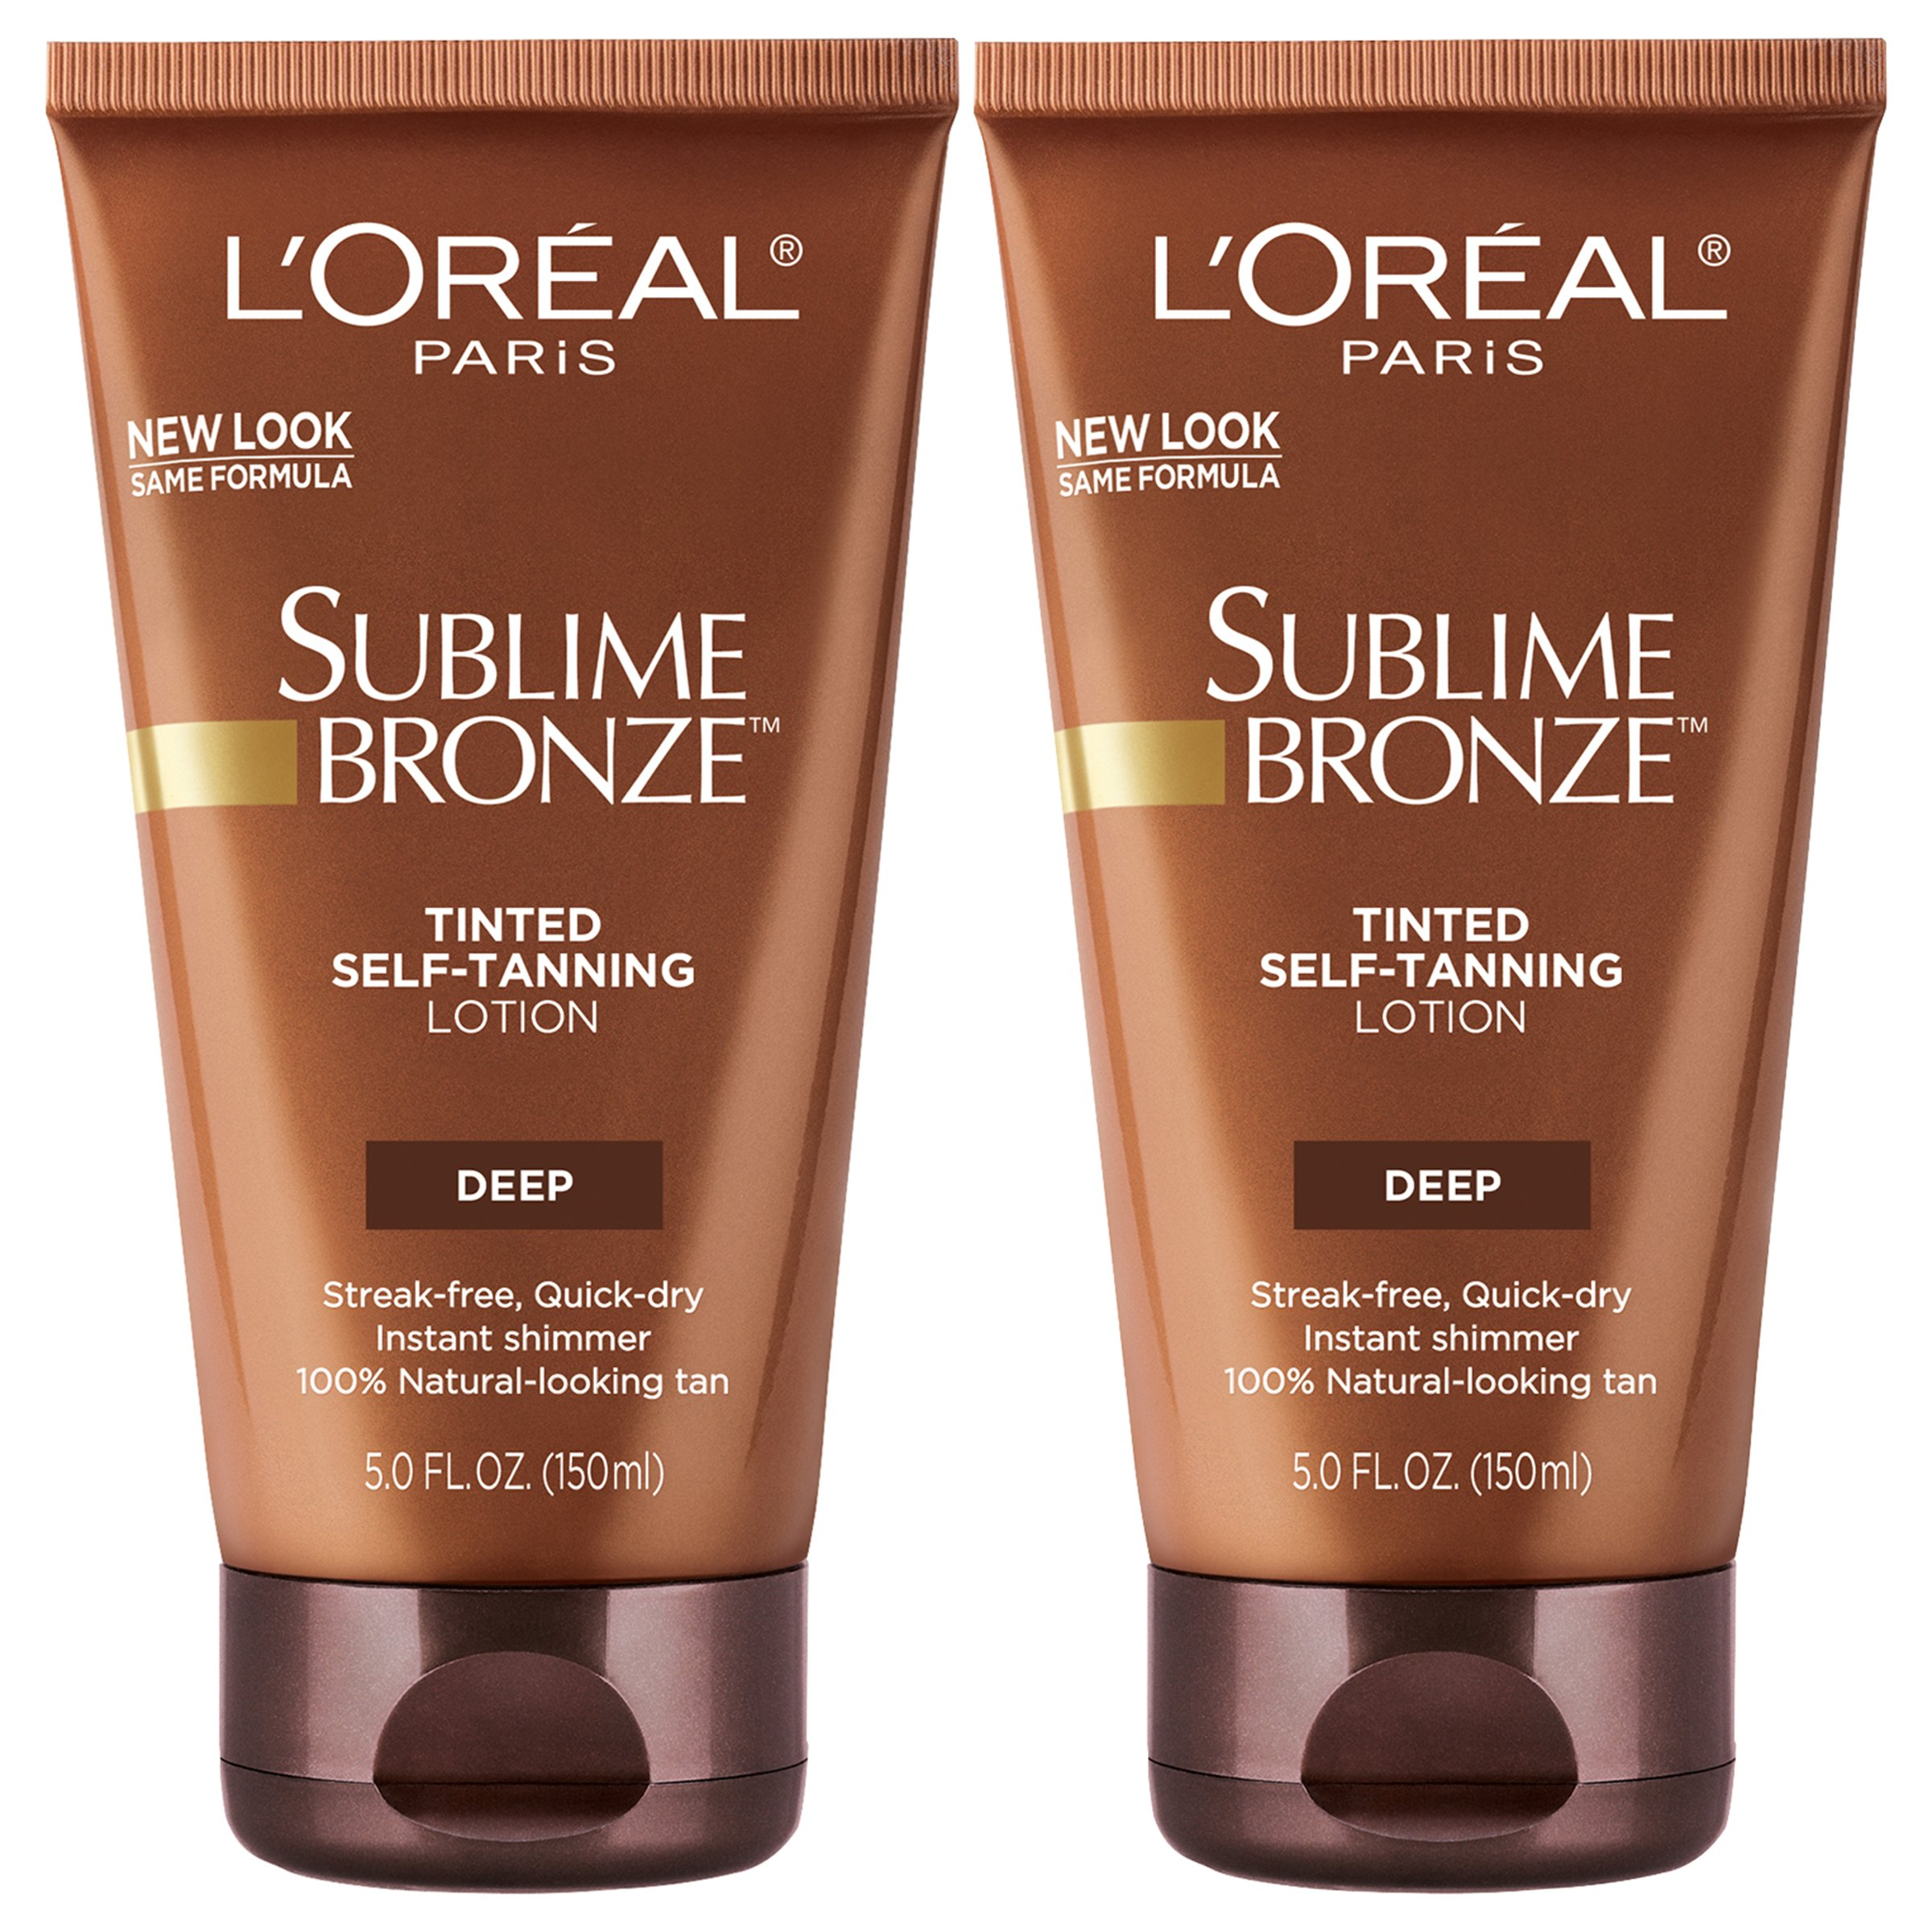 L'Oreal Paris Skin Care Sublime Bronze Tinted Self-Tanning Lotion 5 Fl Oz, (Pack of 2)